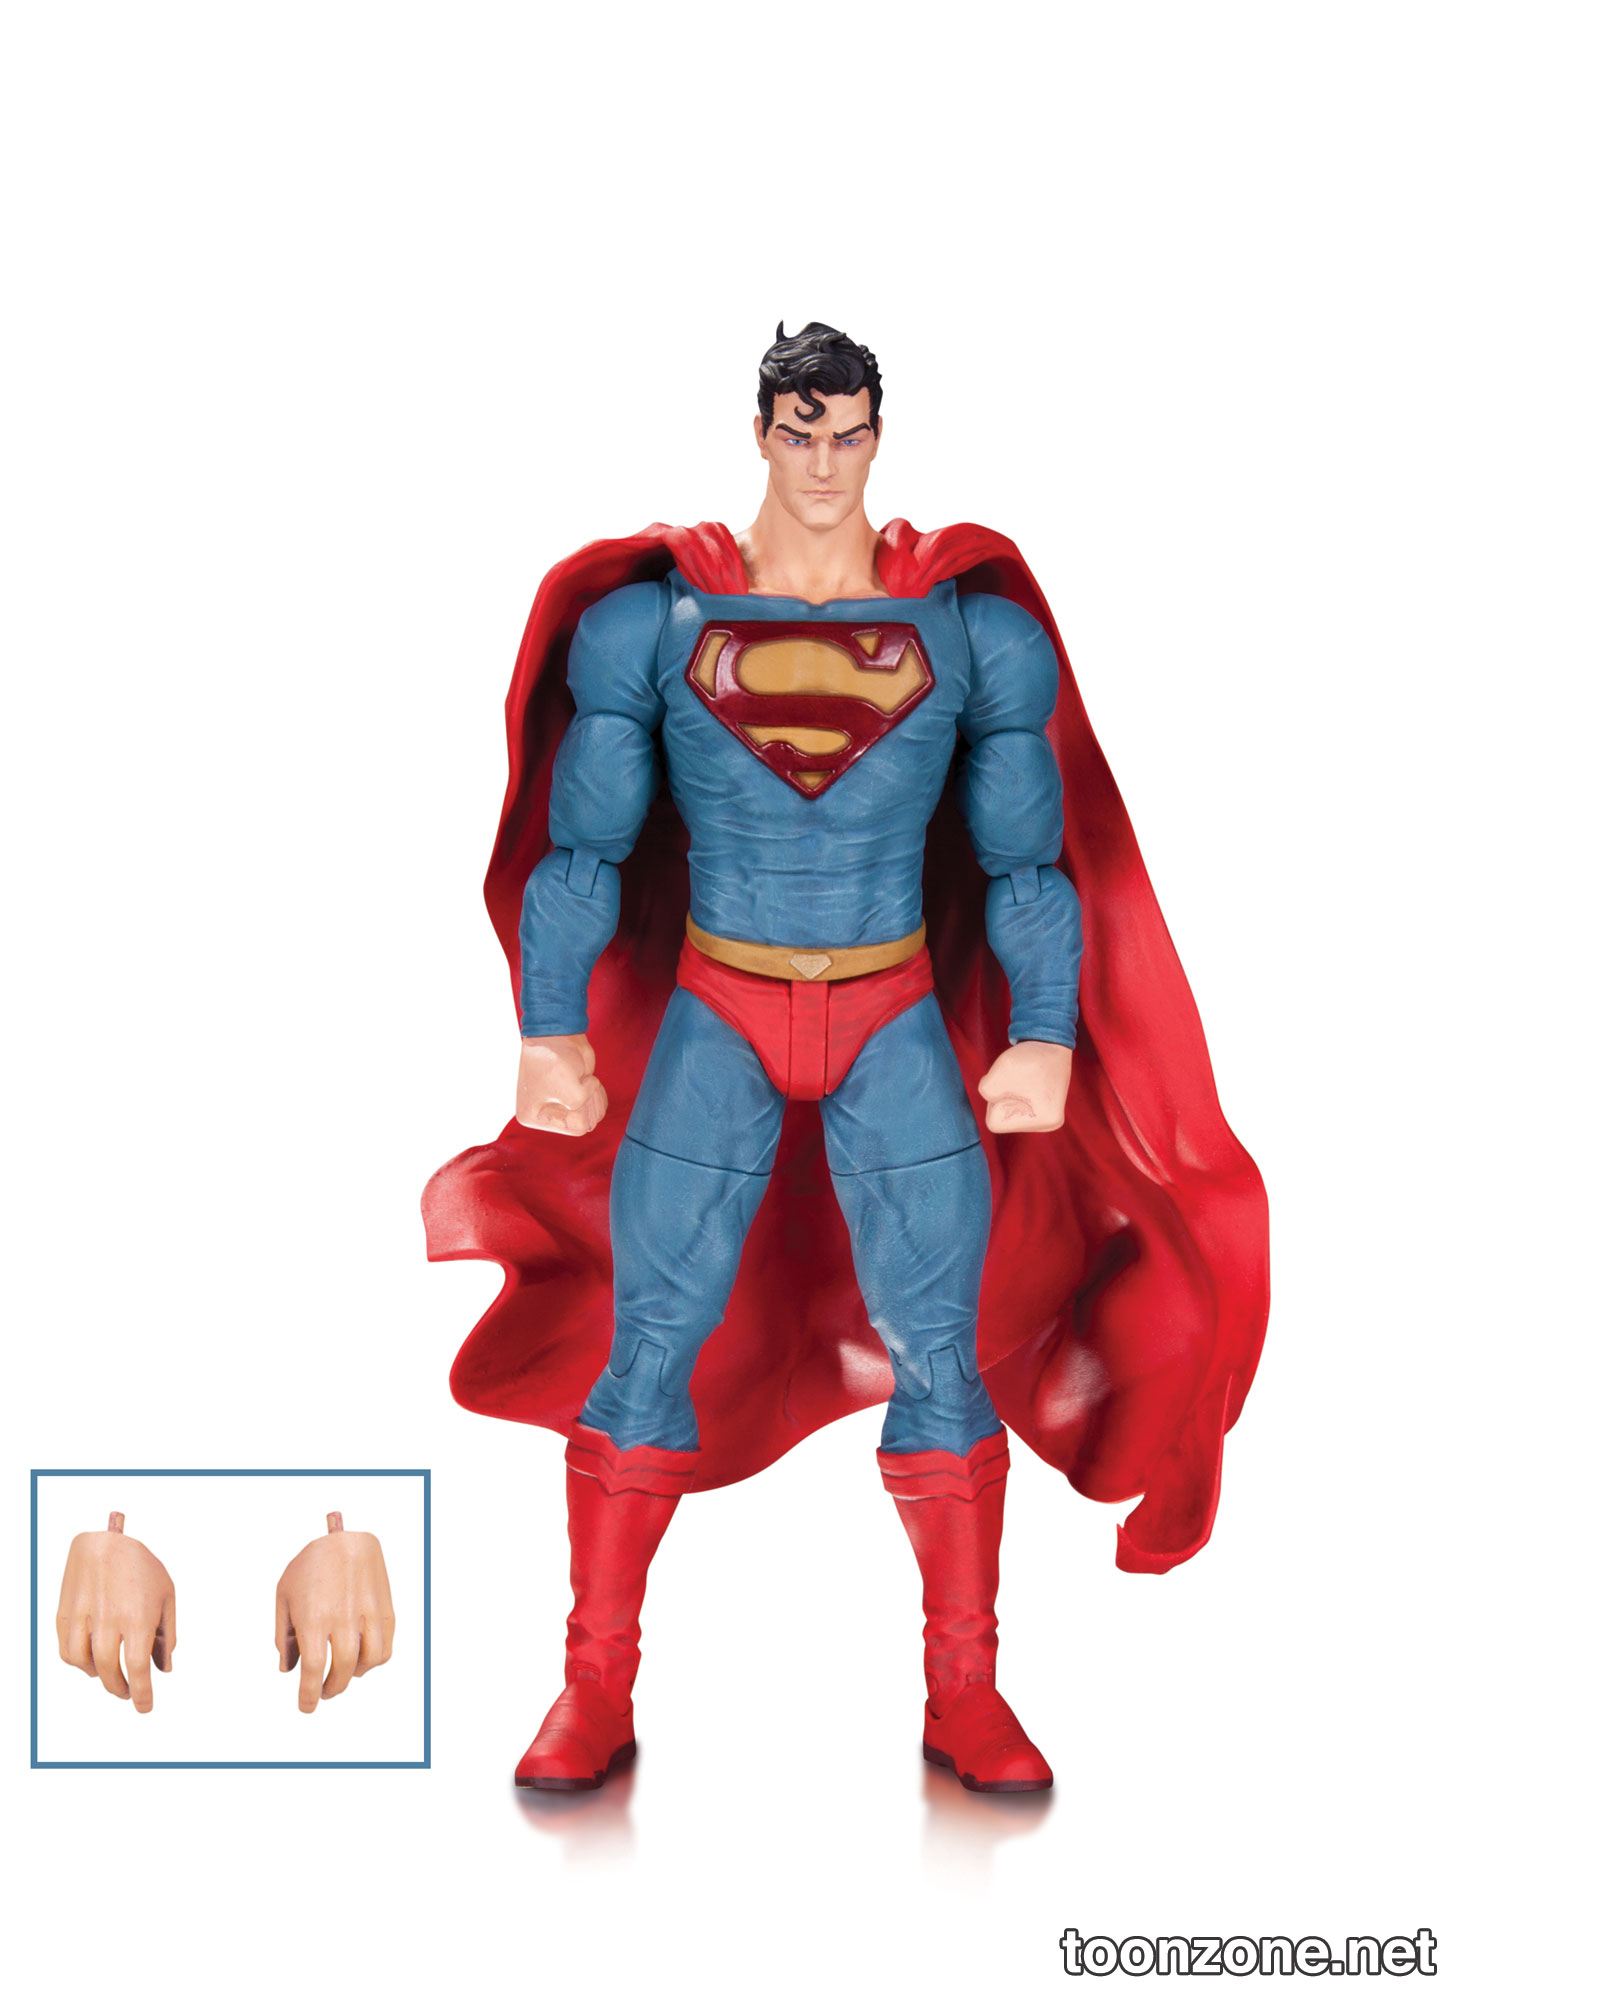 DC COMICS DESIGNER SERIES: LEE BERMEJO – SUPERMAN ACTION FIGURE